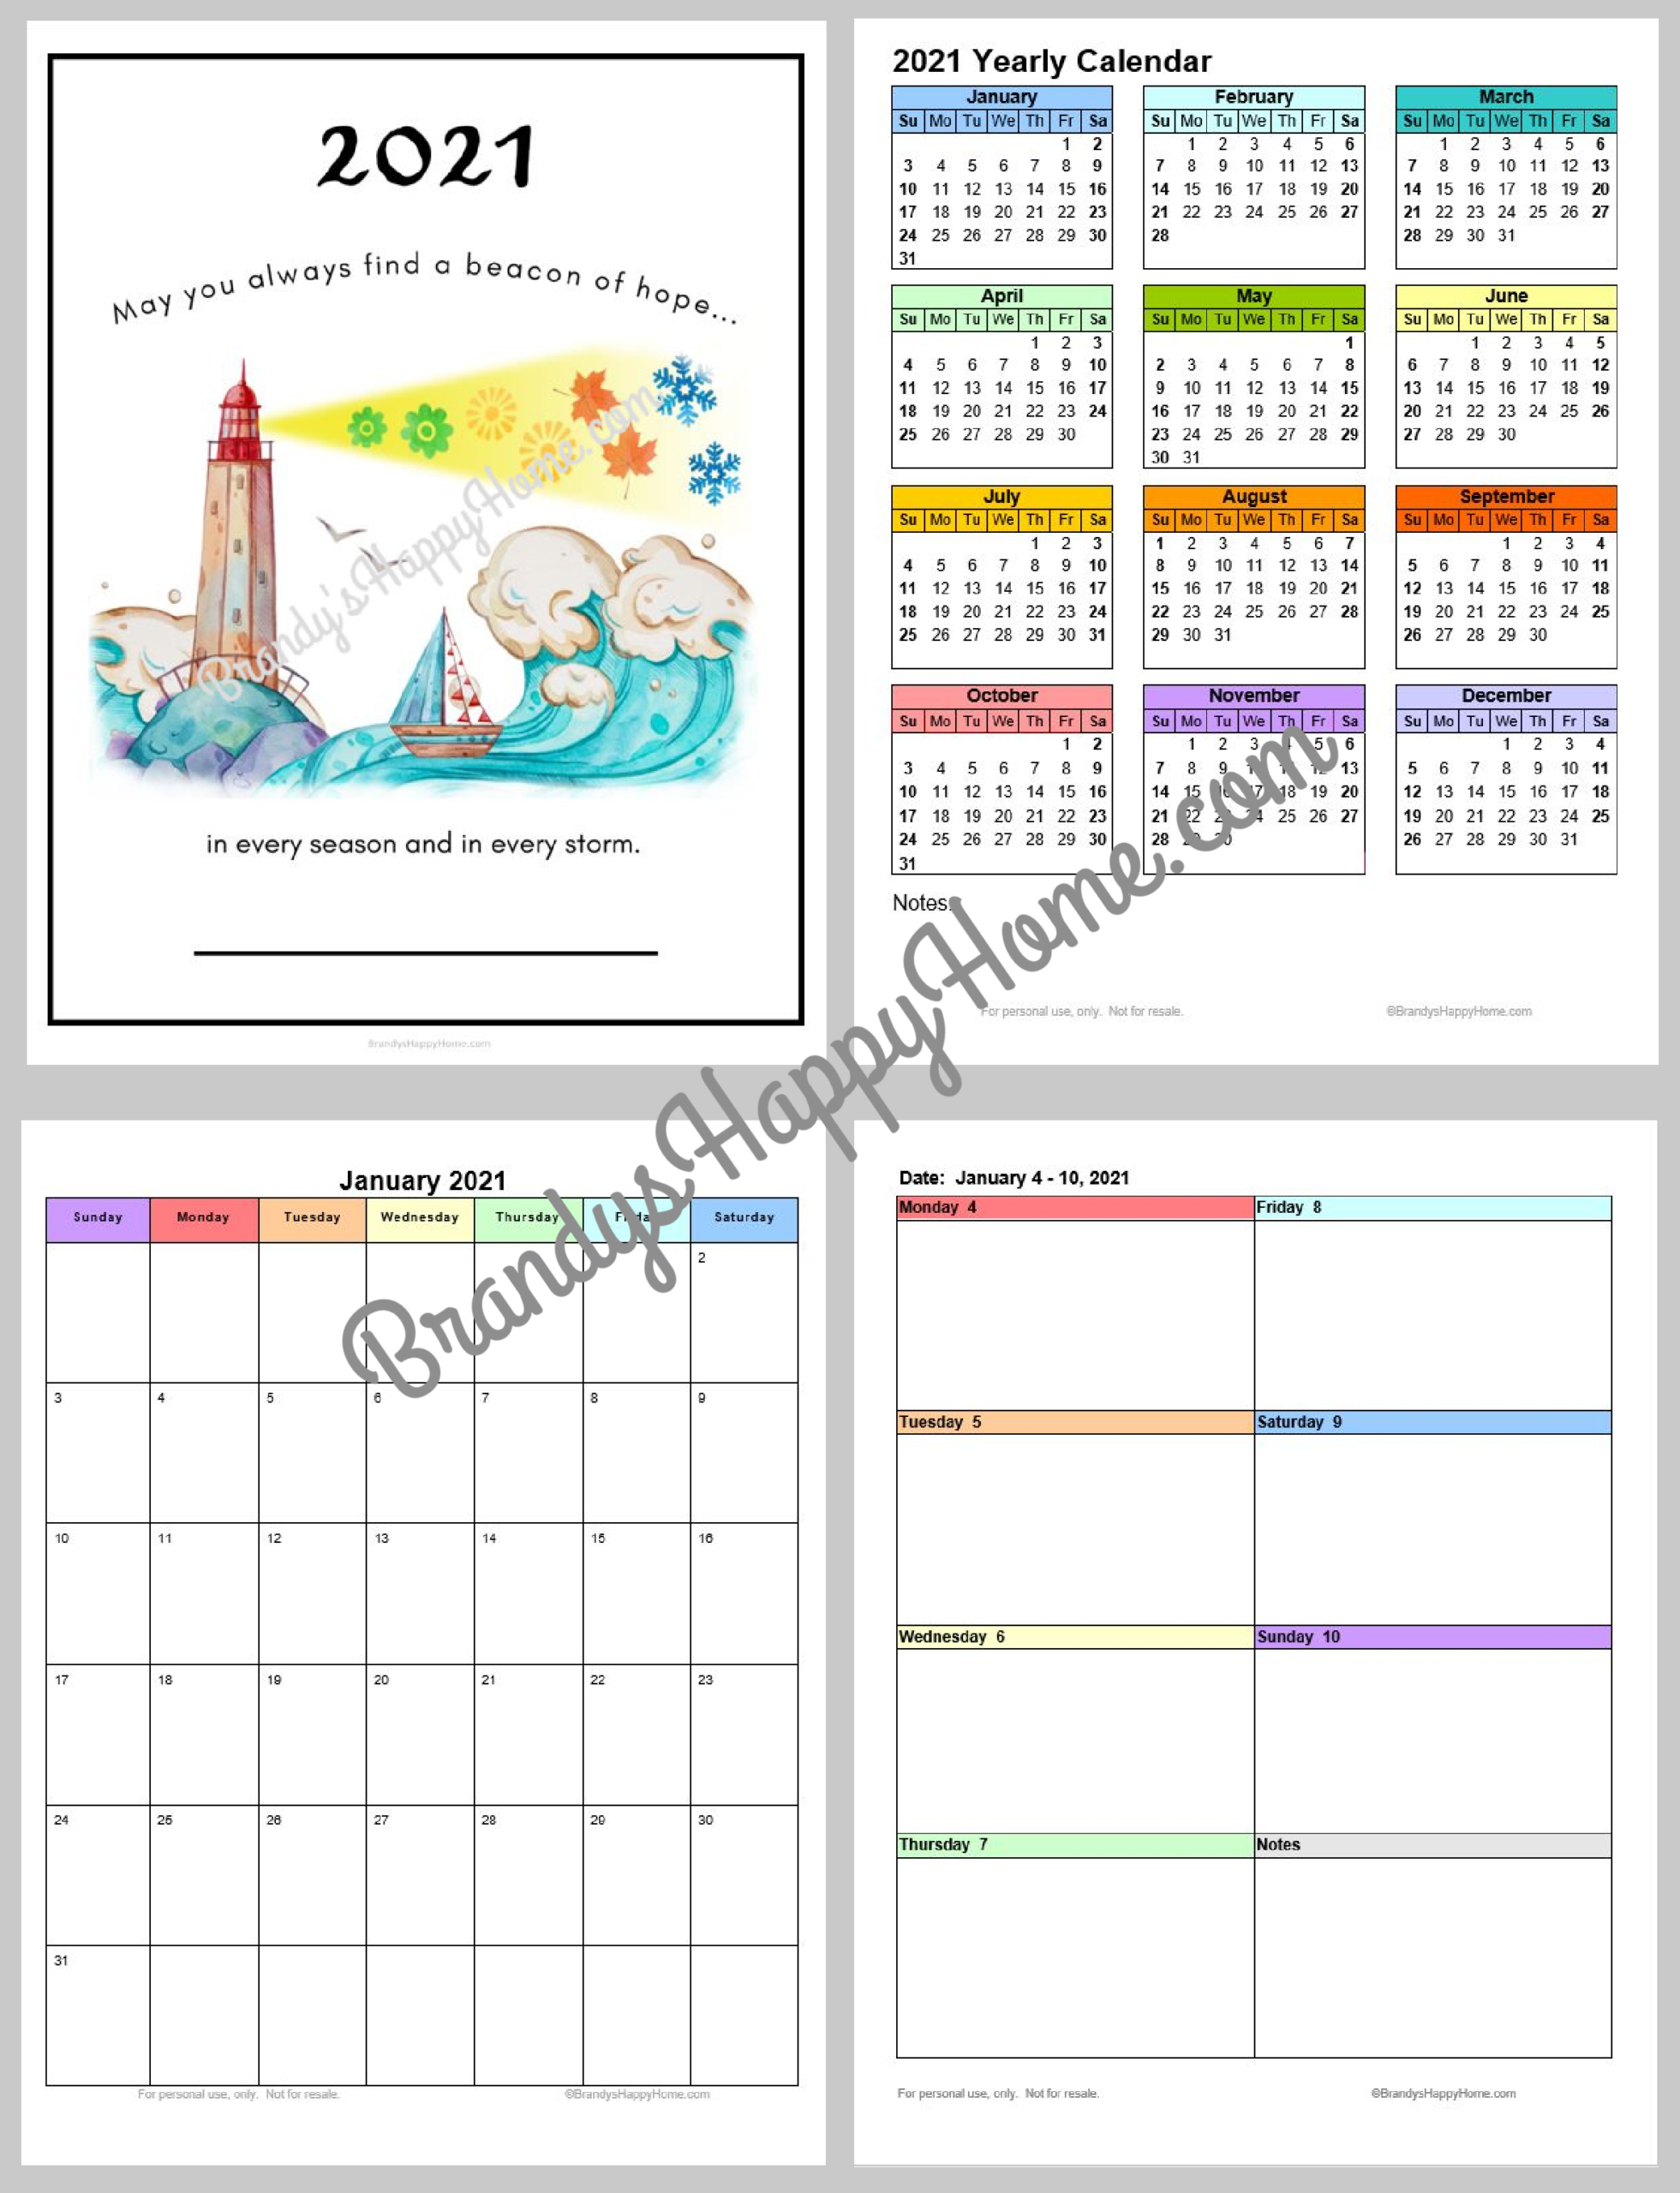 Free 2021 Calendar Planner Printables intended for 2021-2021: Two-Year Monthly Pocket